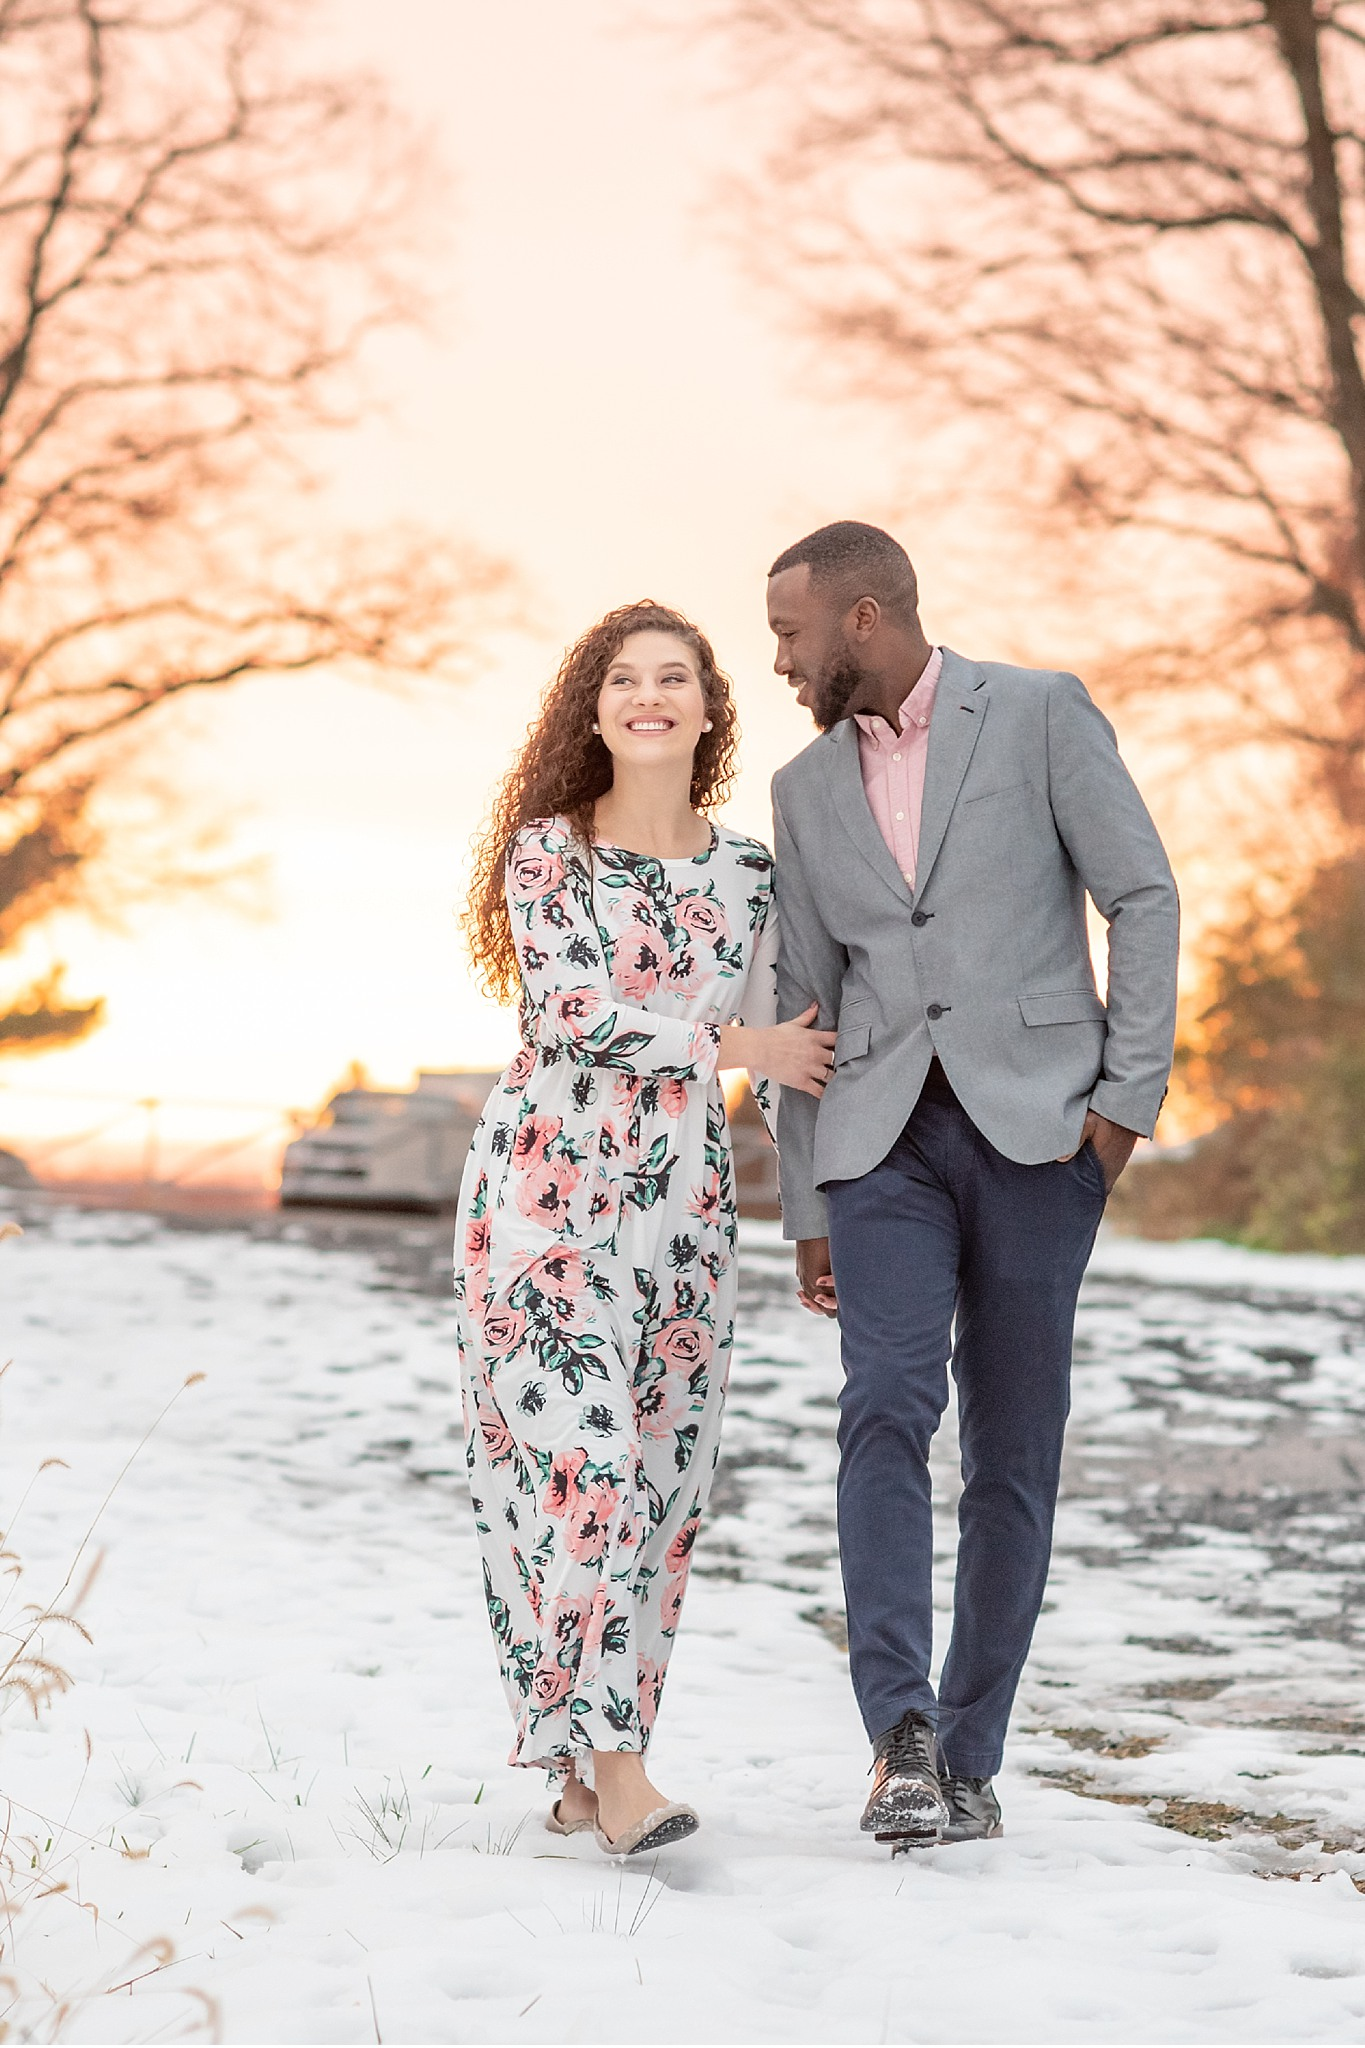 Snowy winter engagement Lancaster County Park Wedding photography photo_2848.jpg